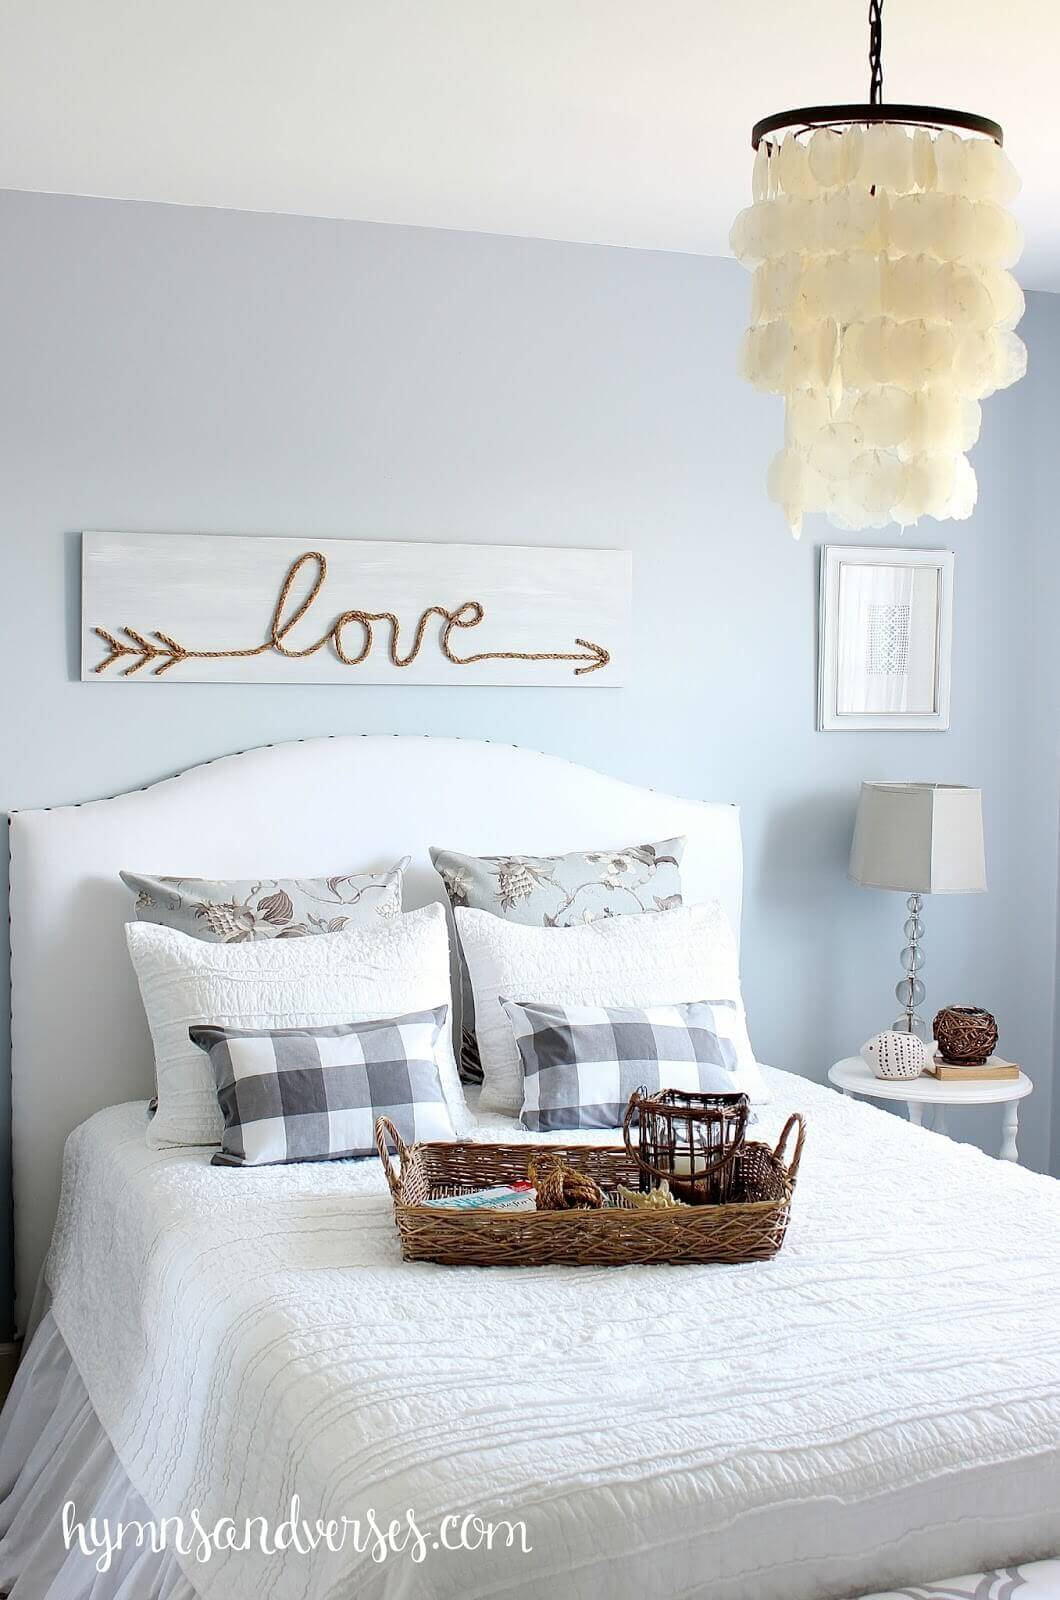 25 best bedroom wall decor ideas and designs for 2019 10730 | 06 bedroom wall decor ideas homebnc